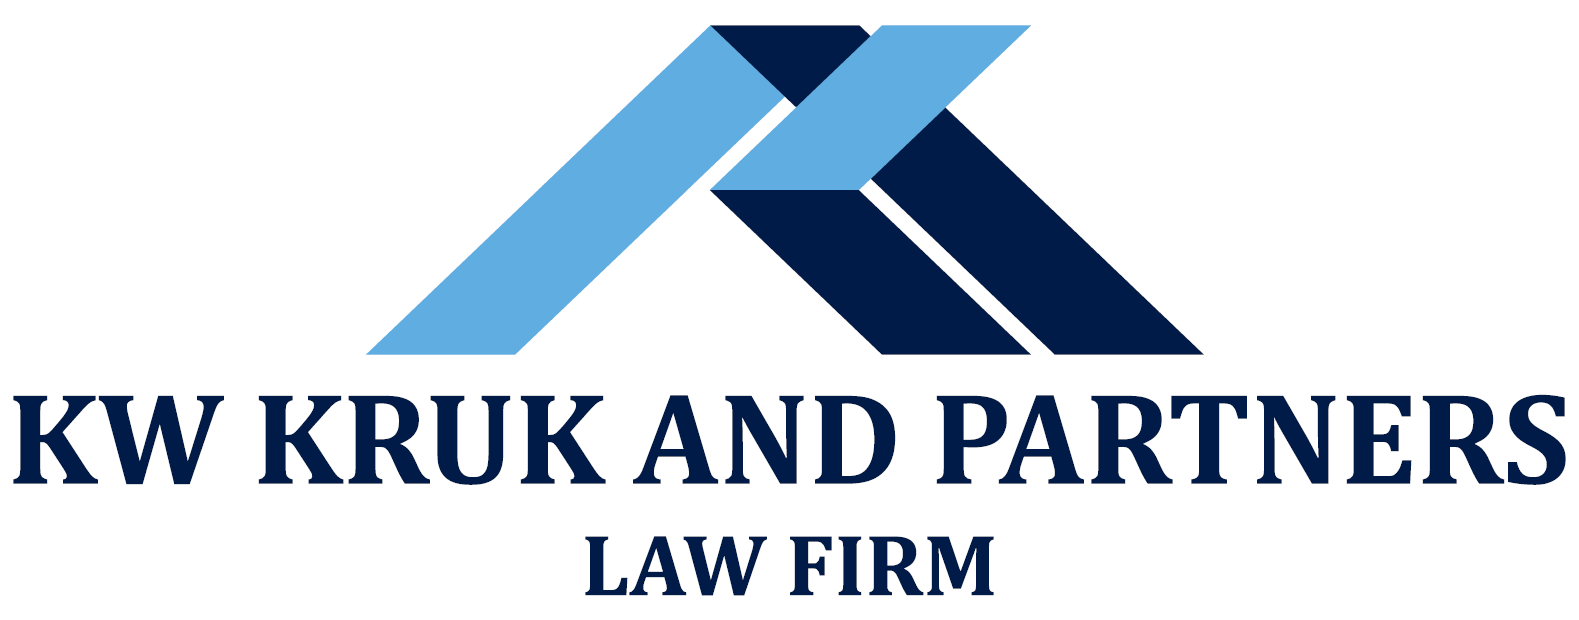 KW KRUK AND PARTNERS LAW FIRM LP